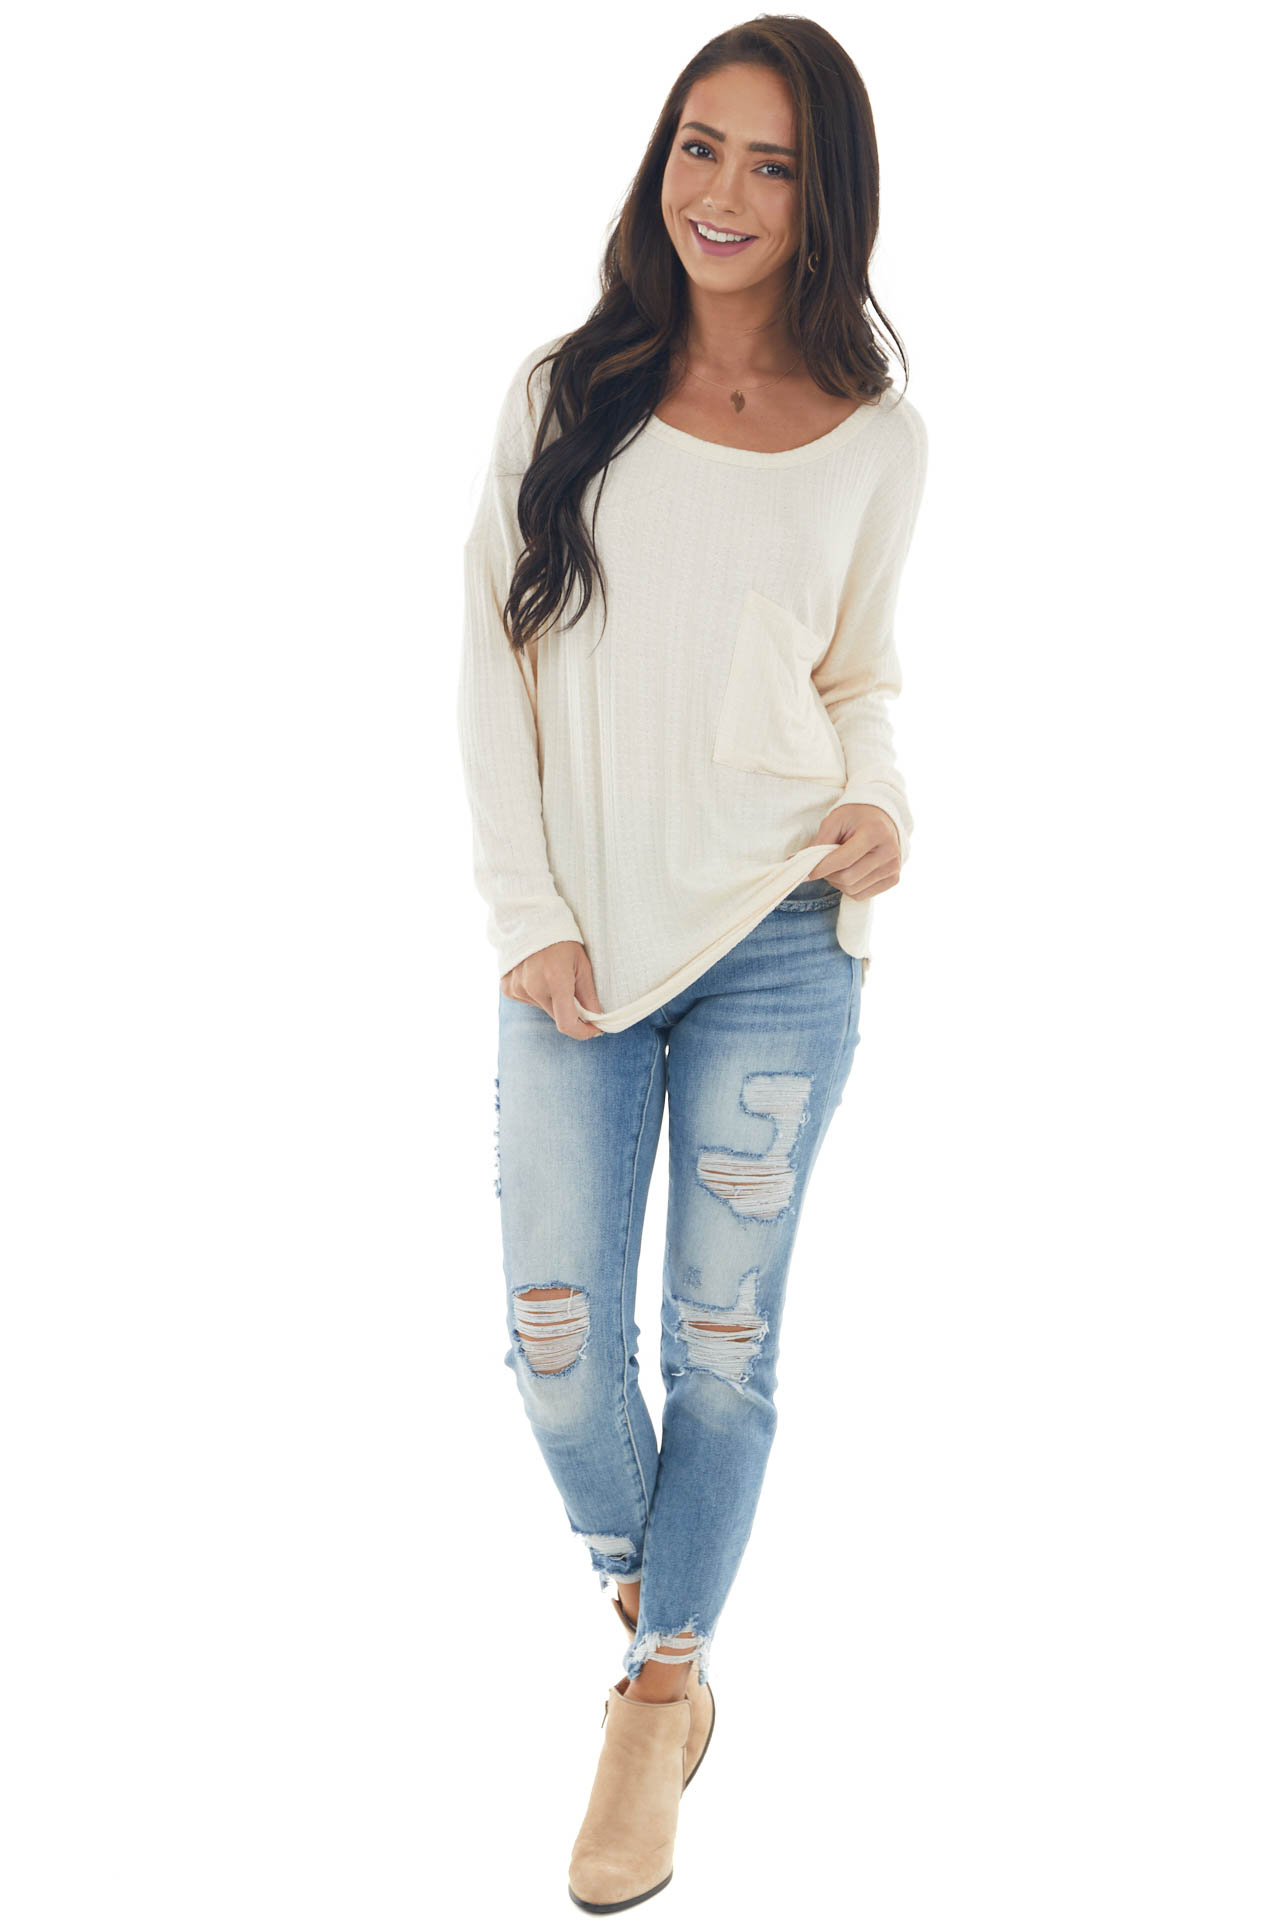 Champagne Textured Knit Top with Chest Pocket